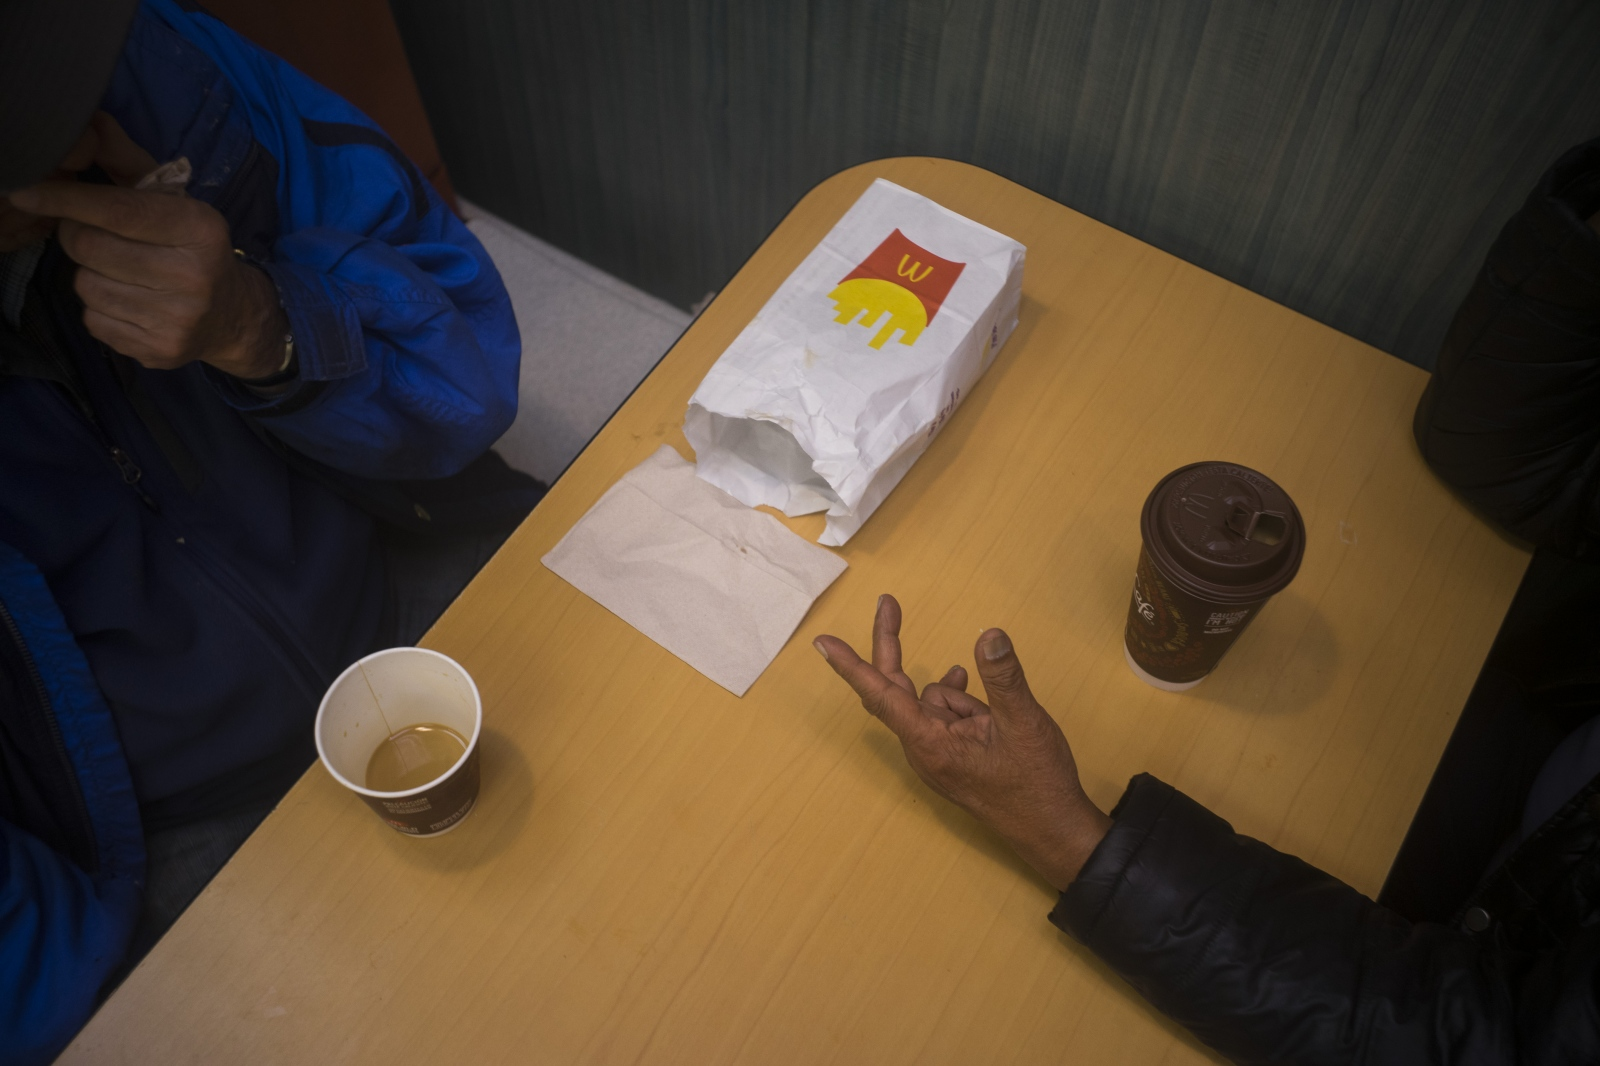 Before Lex goes to sleep, he has coffee with a friend at McDonald's. Both meet every night of the week to chat.